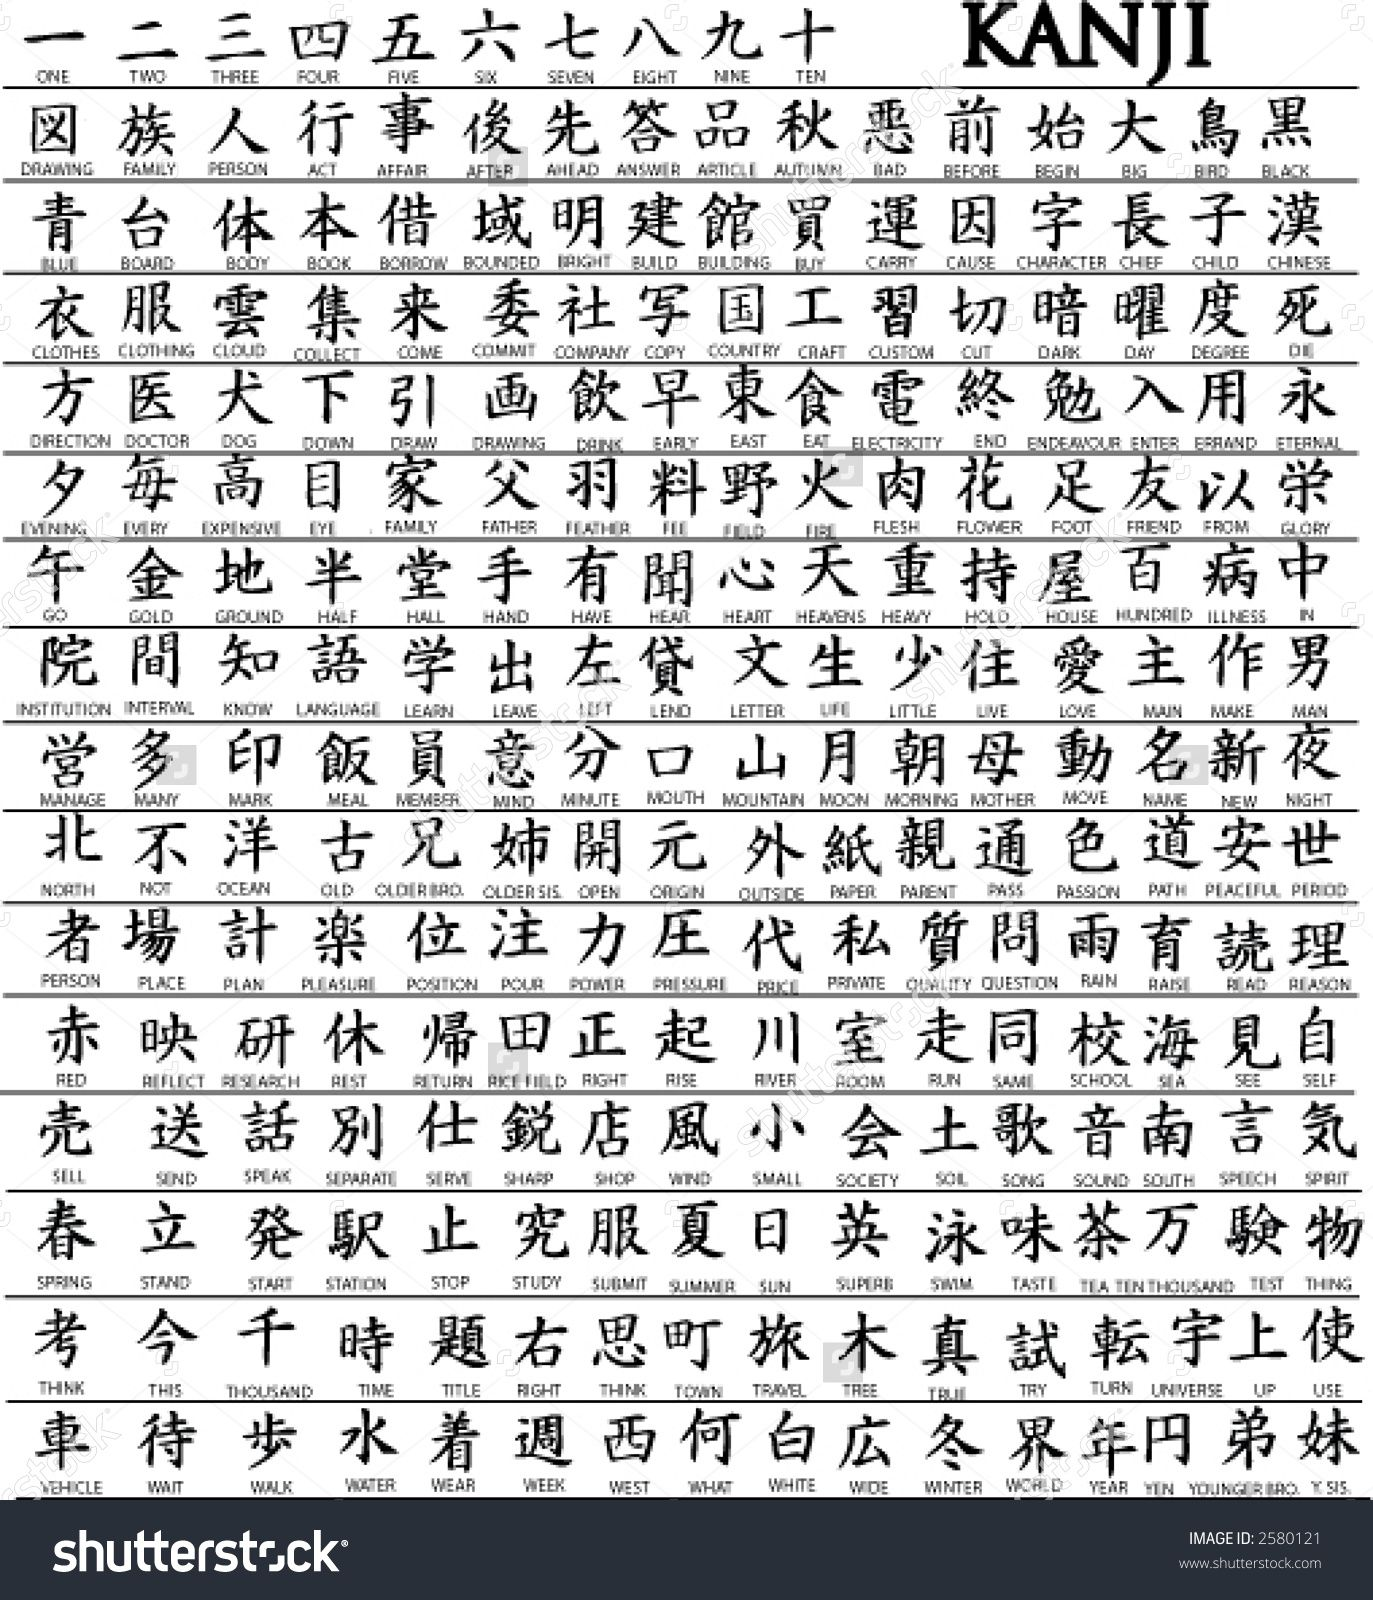 List Of 100 Kanji With Translation Learn Japanese How To Write